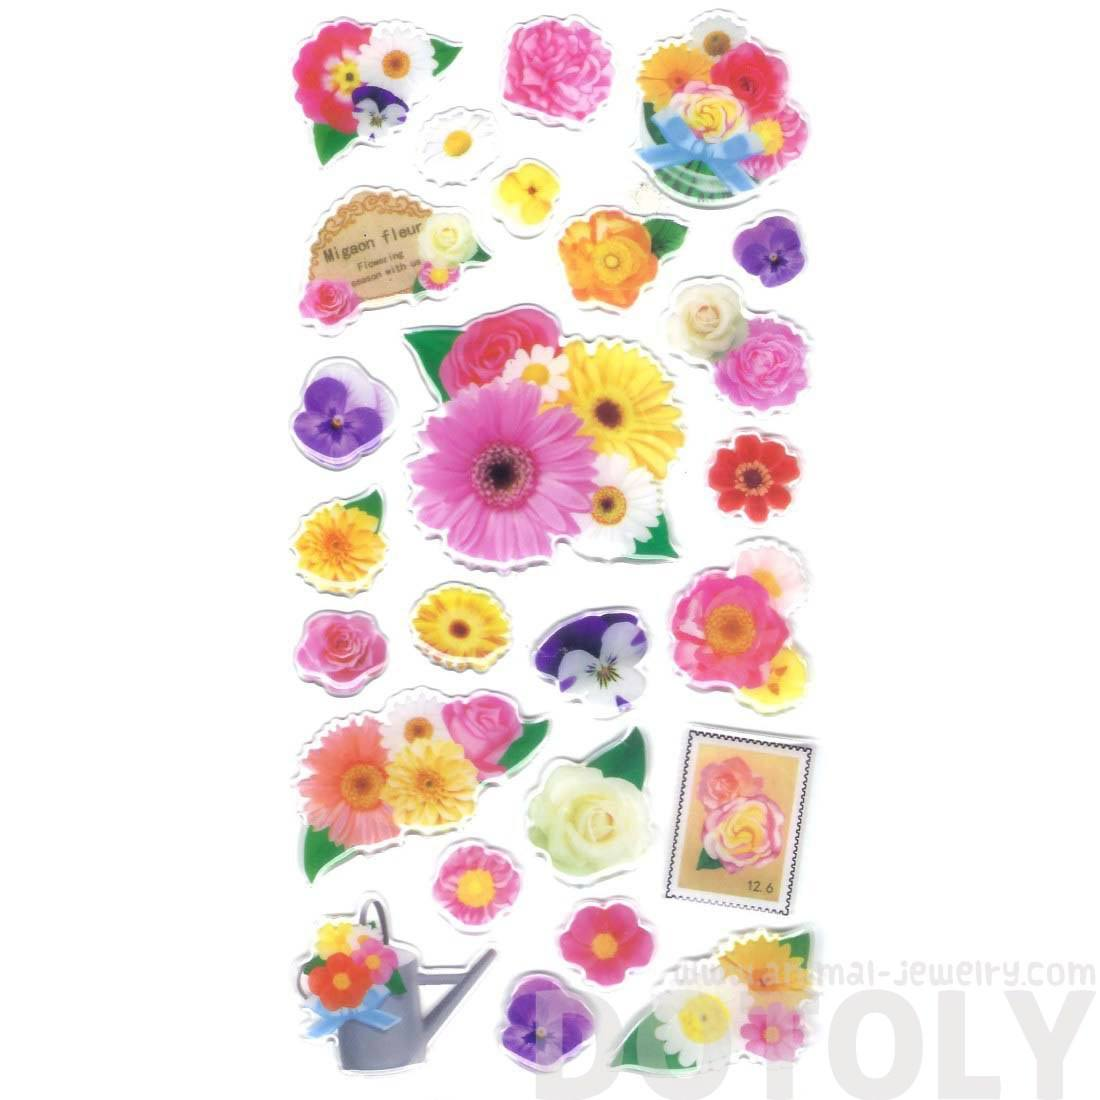 Colorful Tropical Flowers Sunflowers Shaped Spring Themed Stickers